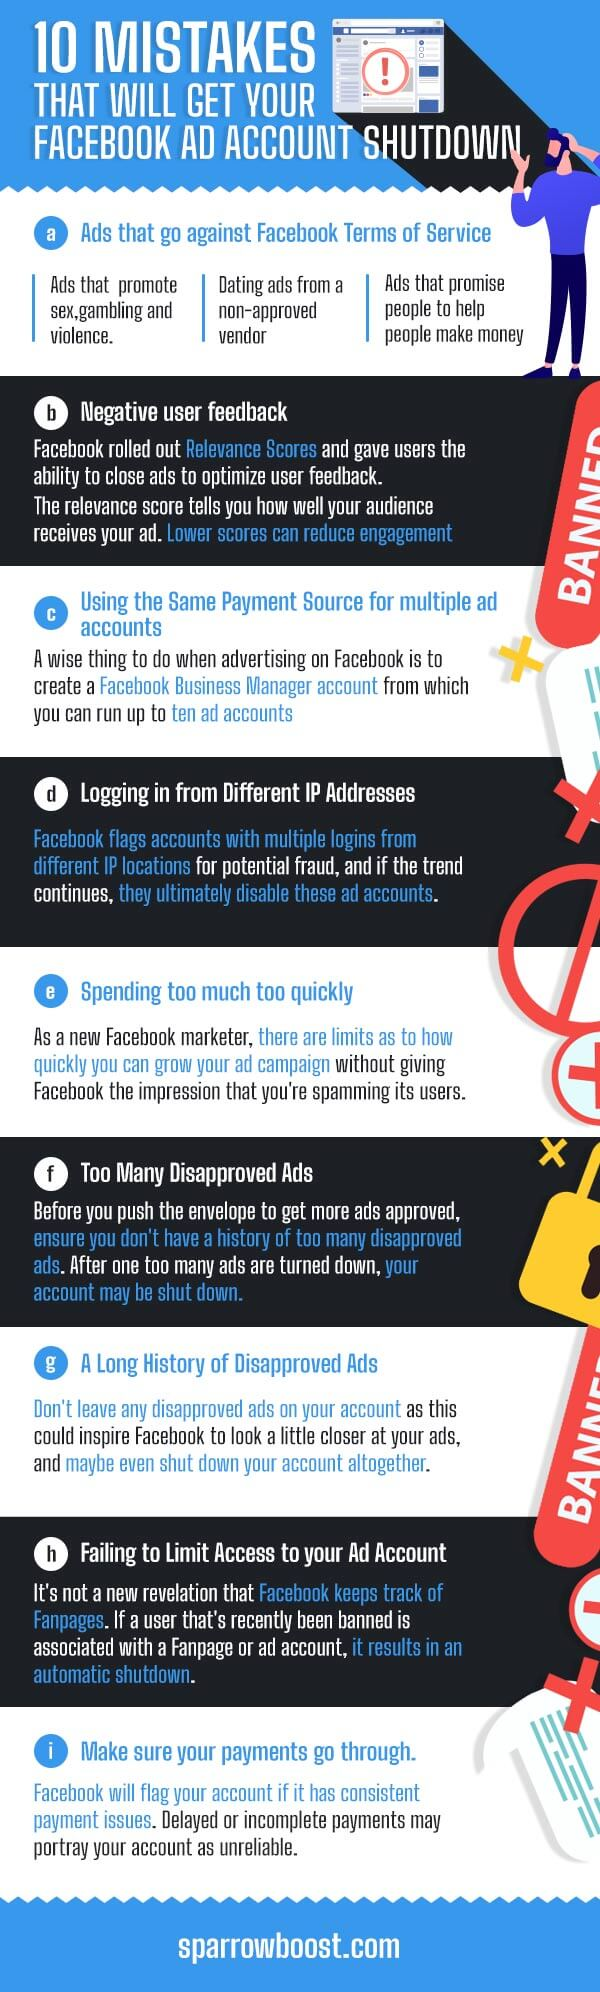 10 Mistakes That Will Get Your Facebook Ad Account Shut Down